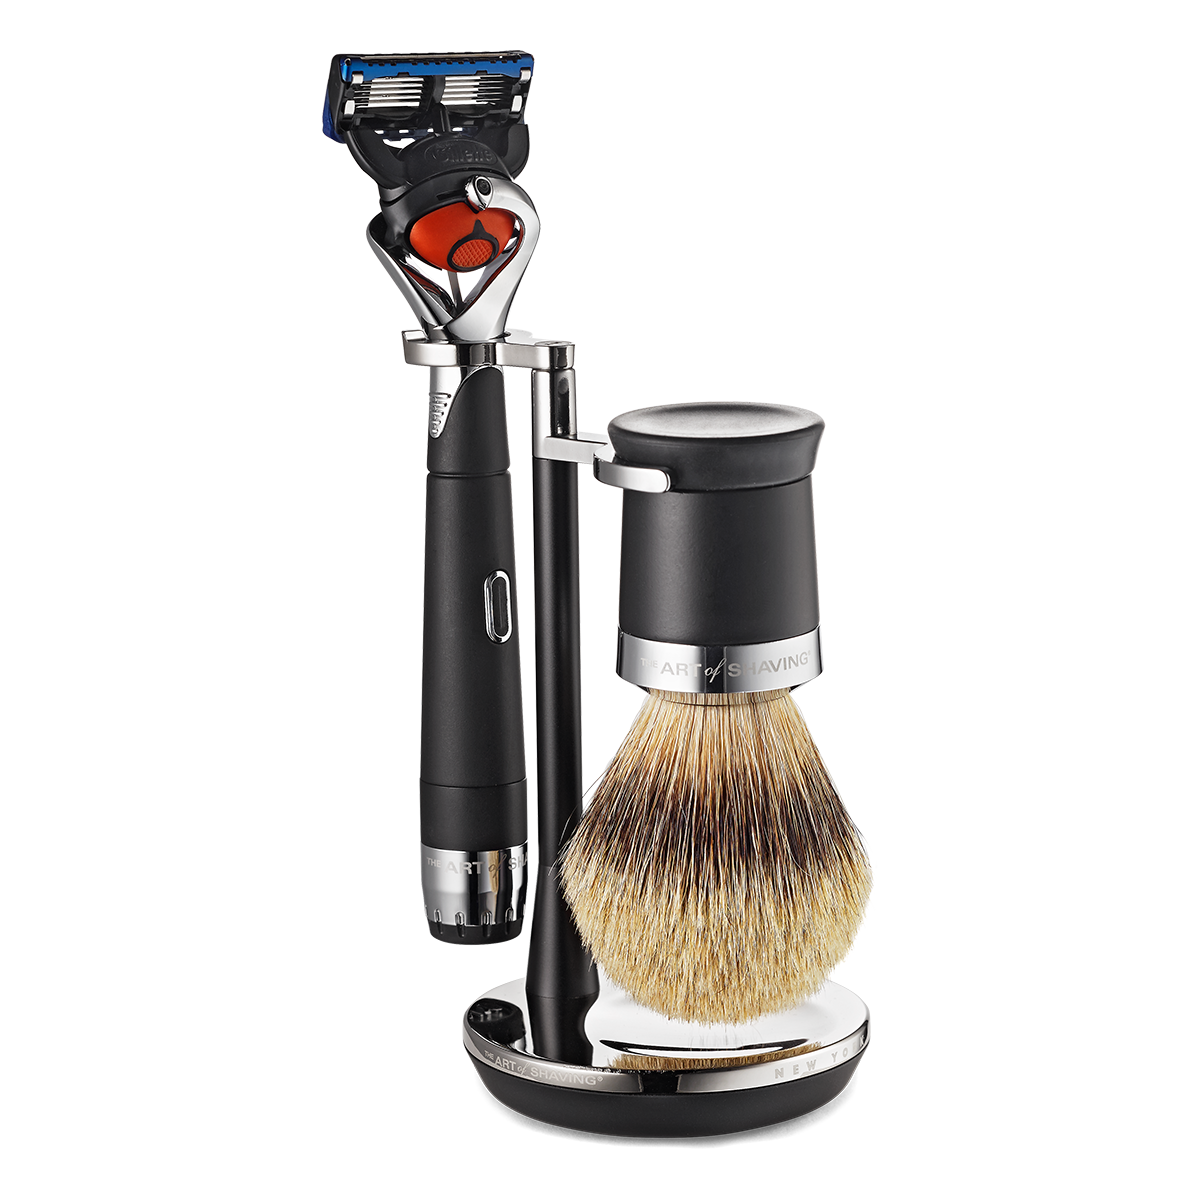 Lex Power Razor w Brush and Stand.png